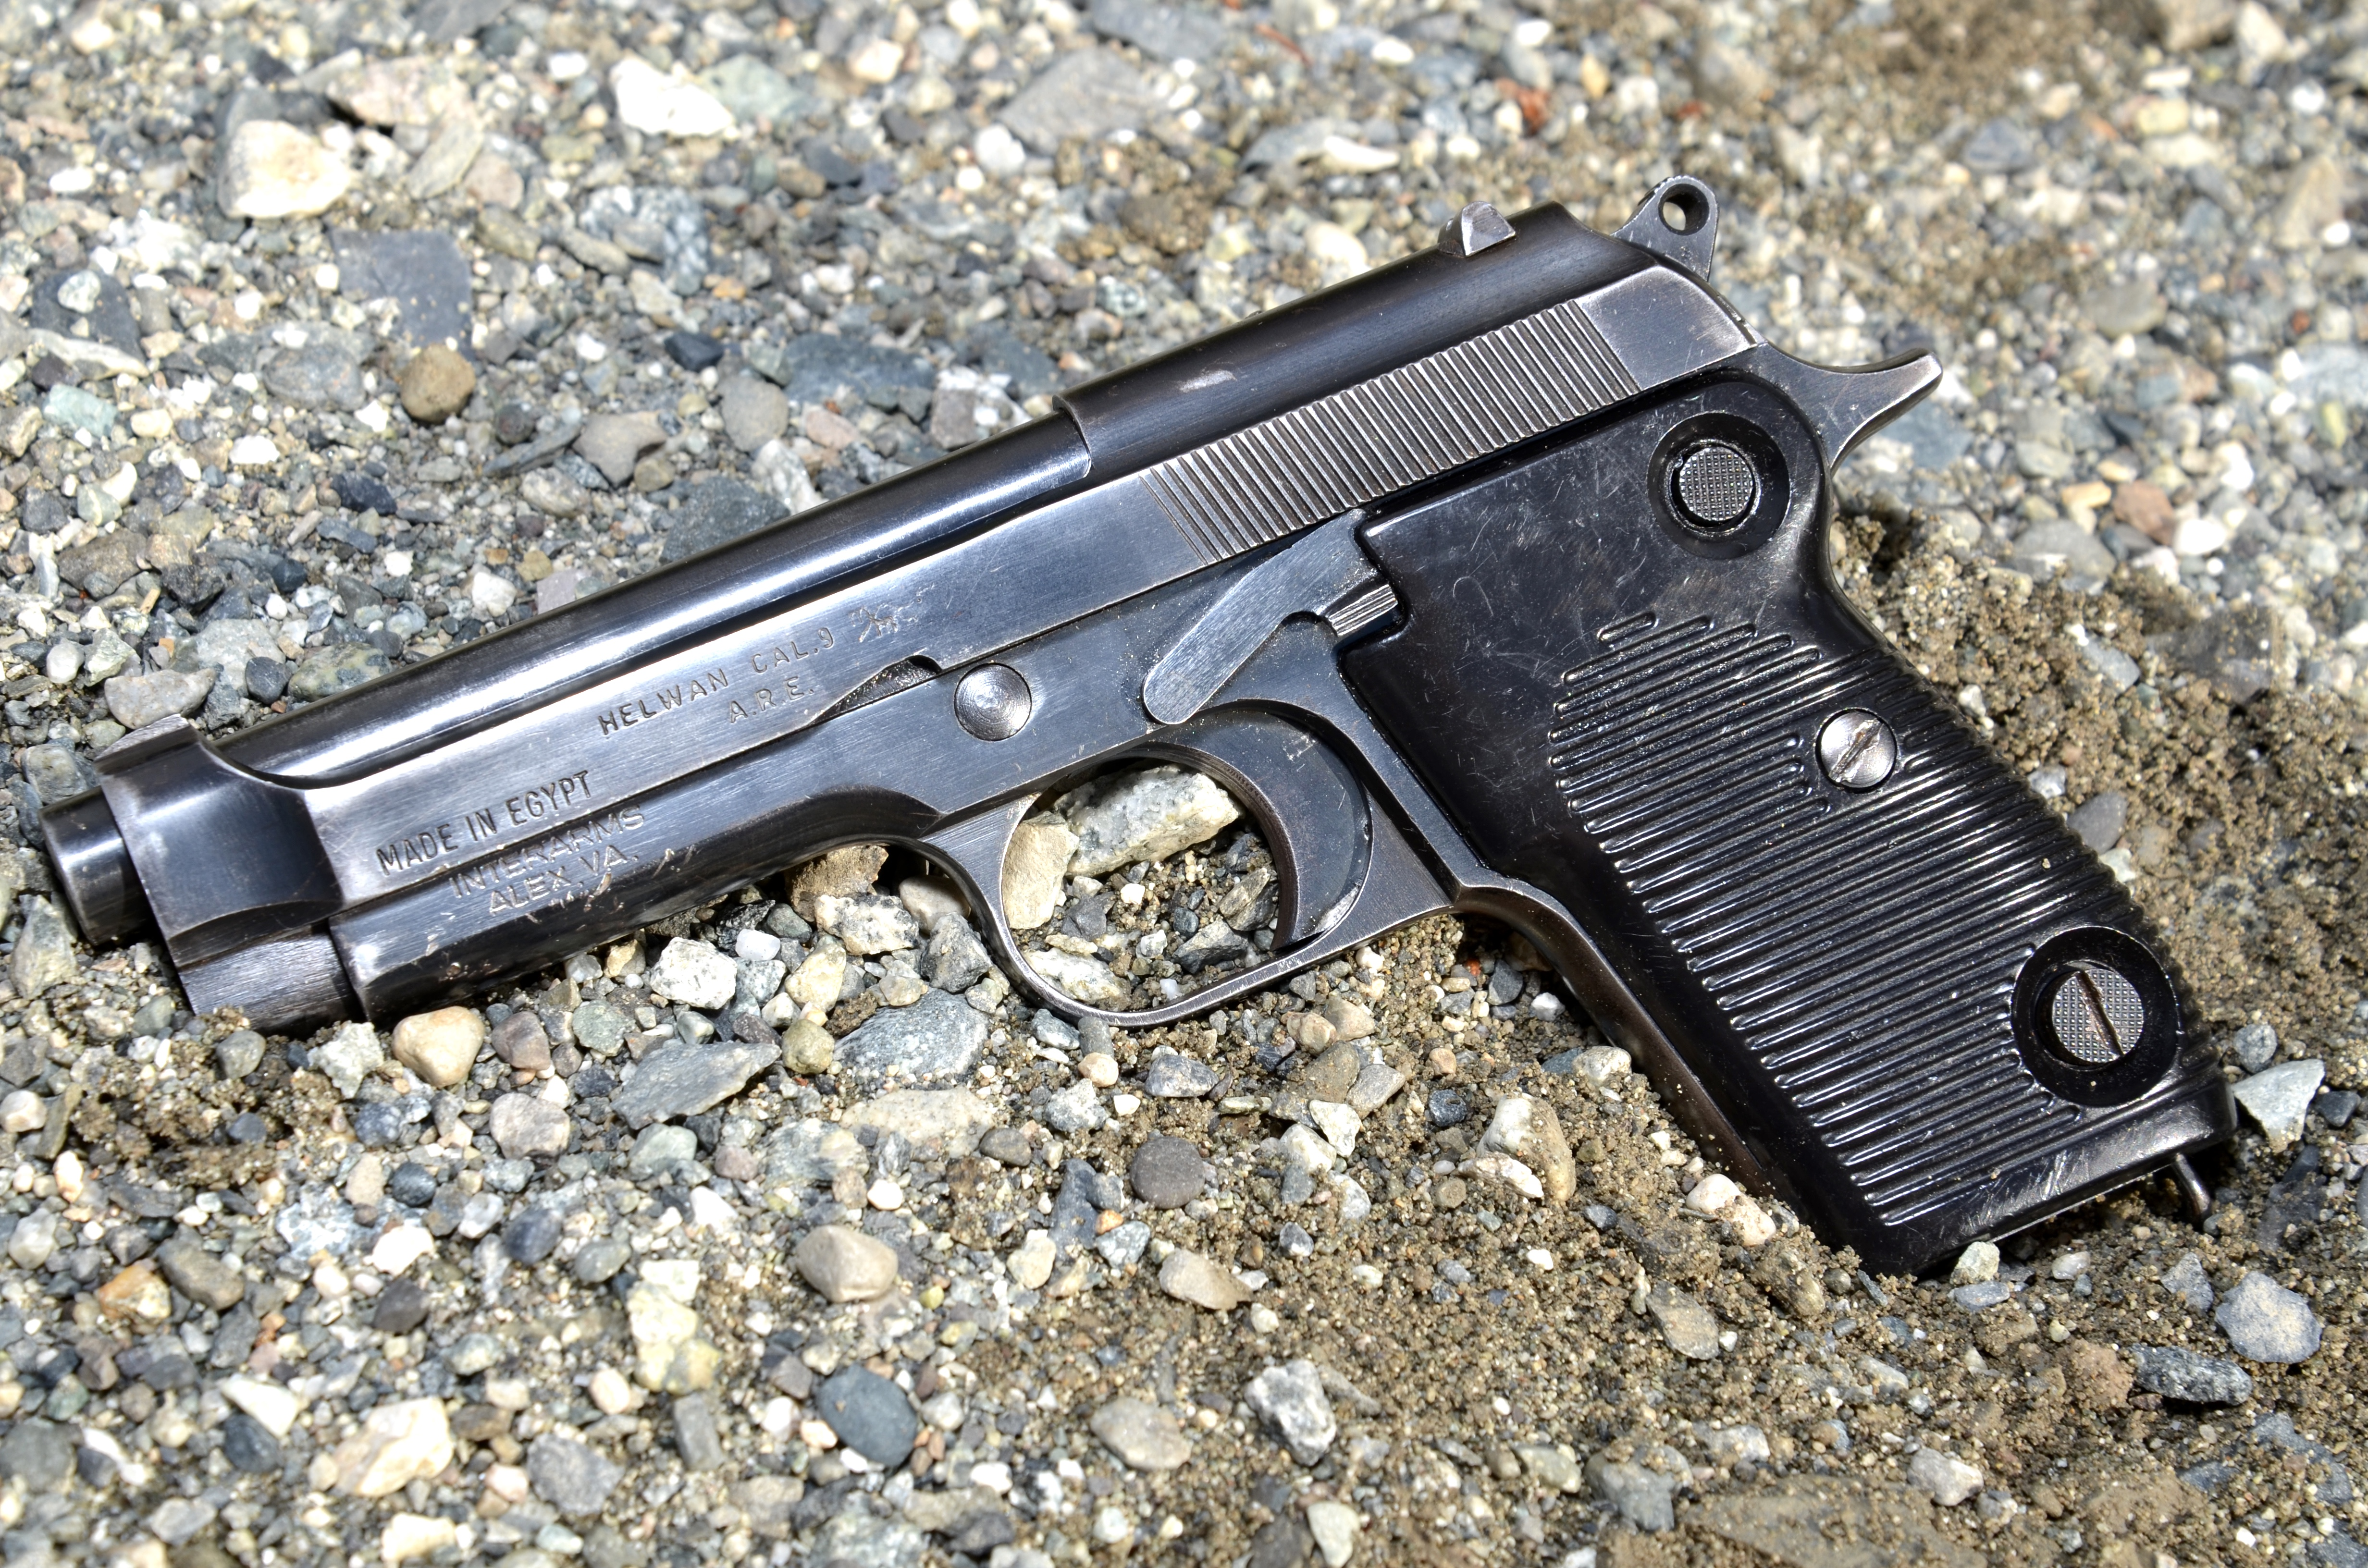 The Egyptian Helwan copy of the Beretta M1951 has some differences from the Beretta version such as the magazine release. (Picture courtesy thearmsguide.com).